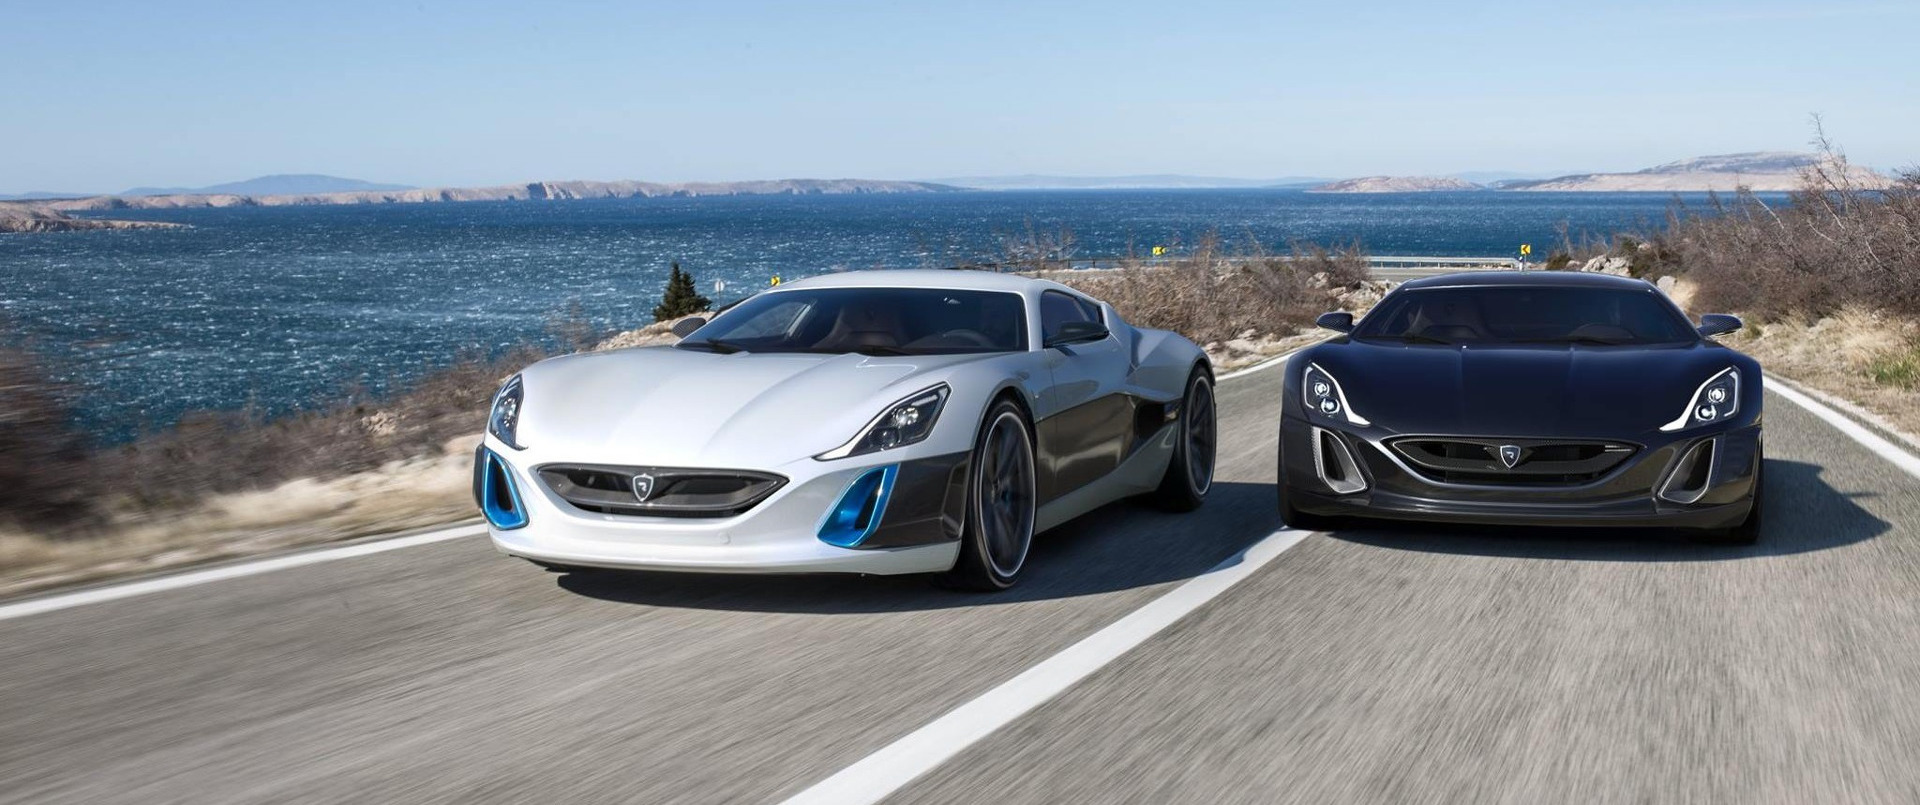 Rimac Sold 3 Cars The Day When Richard Hammond Crashed